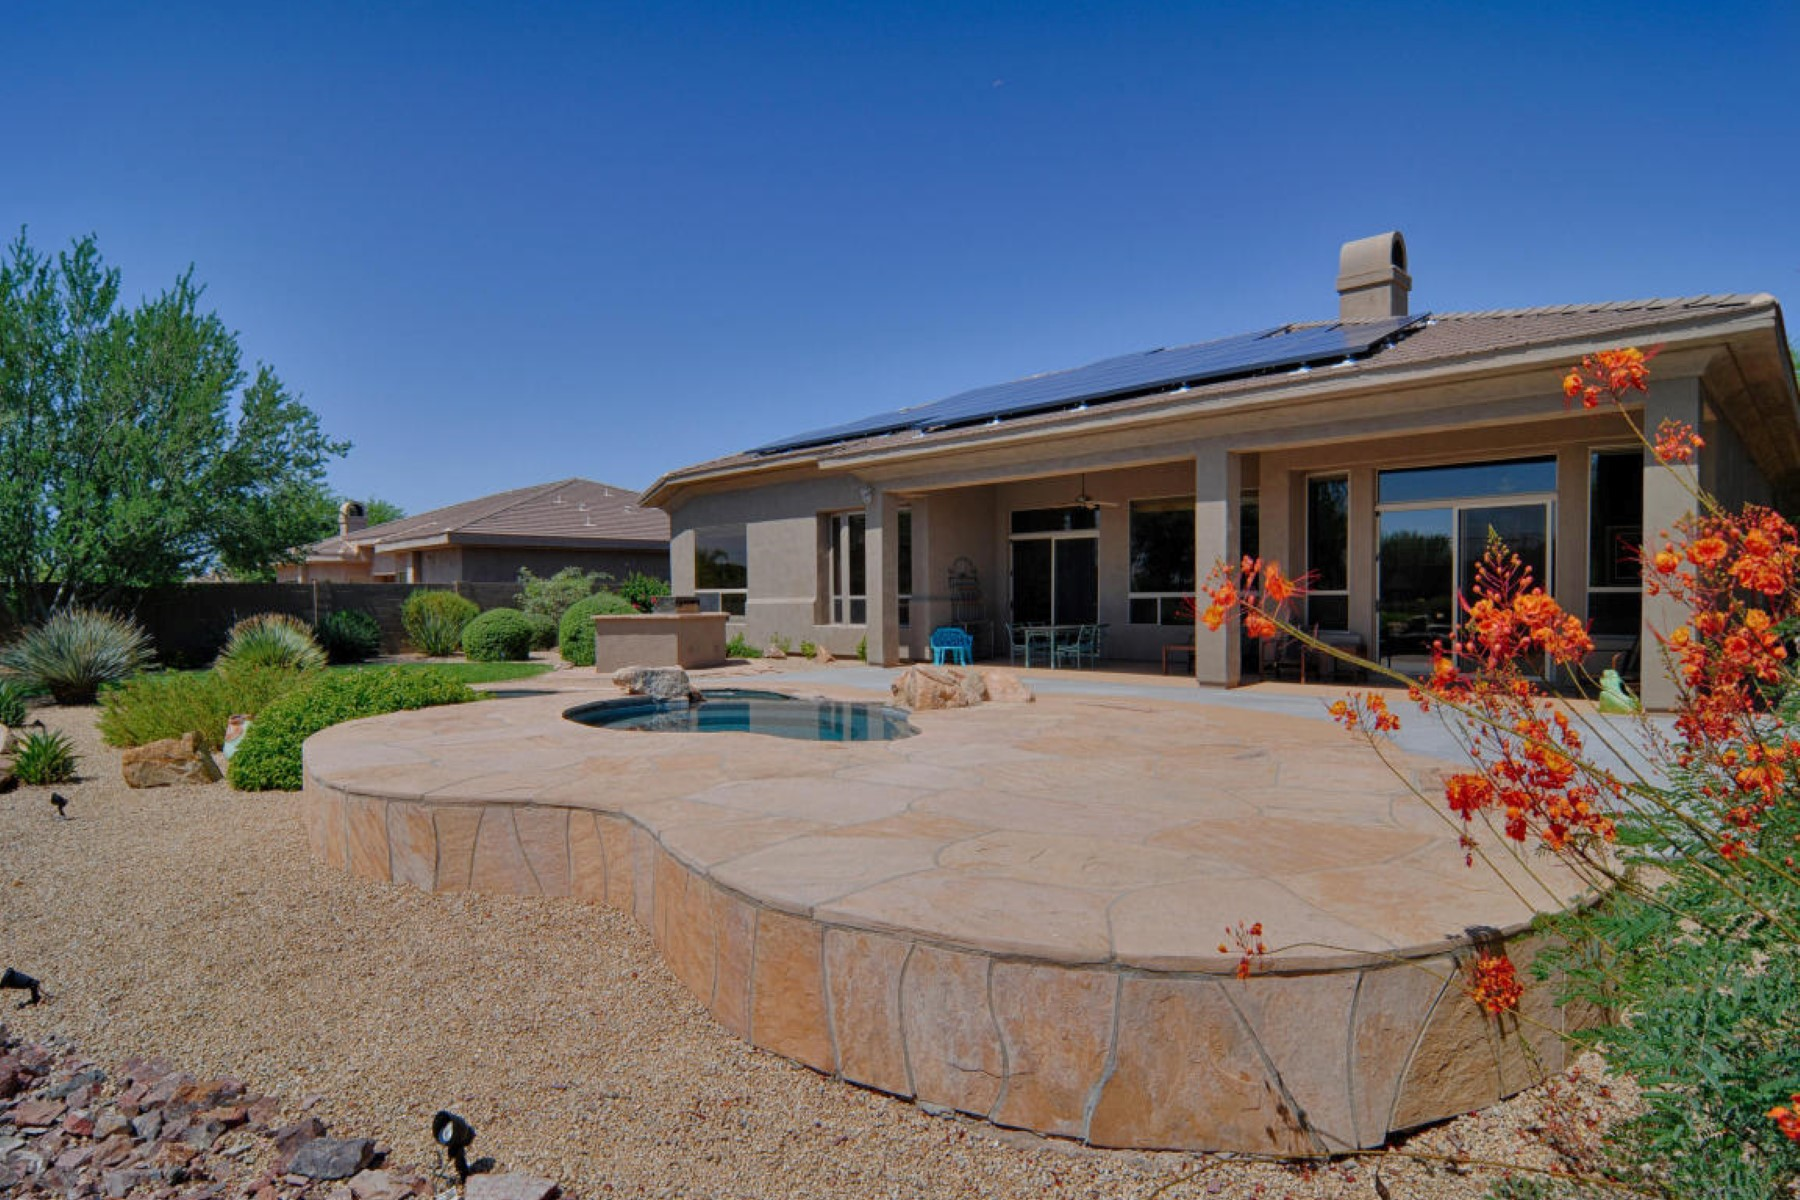 Property Of Beautifully Furnished Luxury Home In The Exclusive Pinnacle Peak Development